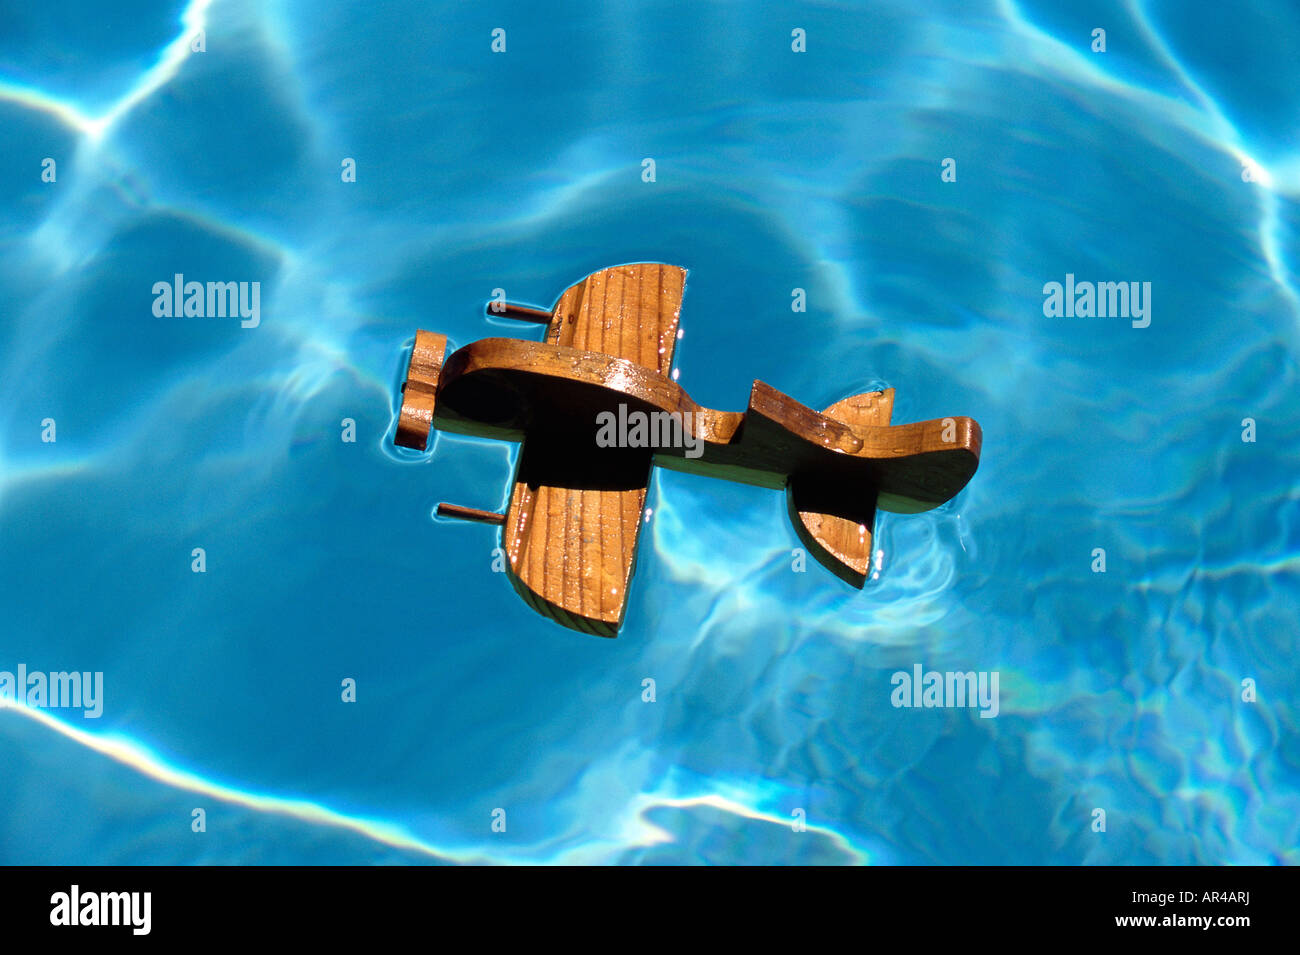 A wooden aircraft on a swimming pool - Stock Image